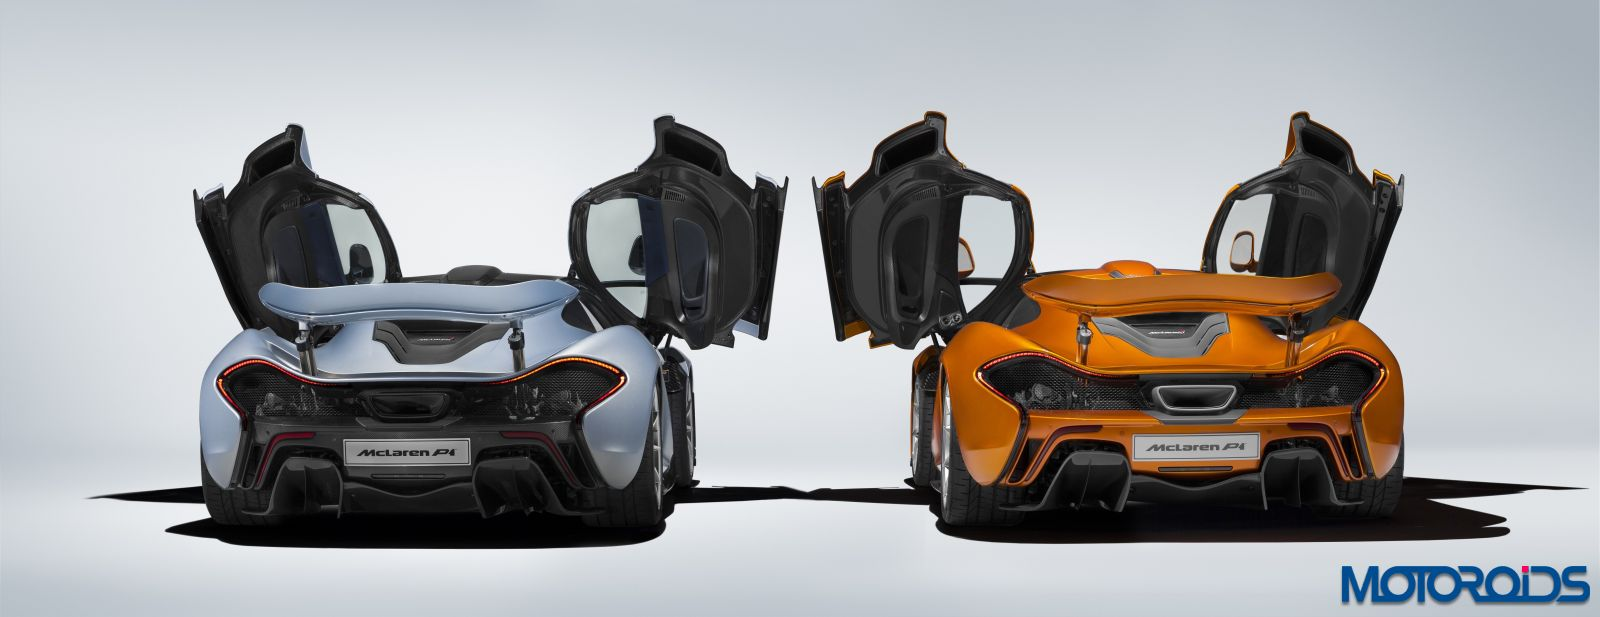 mclaren-brings-the-curtain-down-on-the-p1-photo-gallery_4